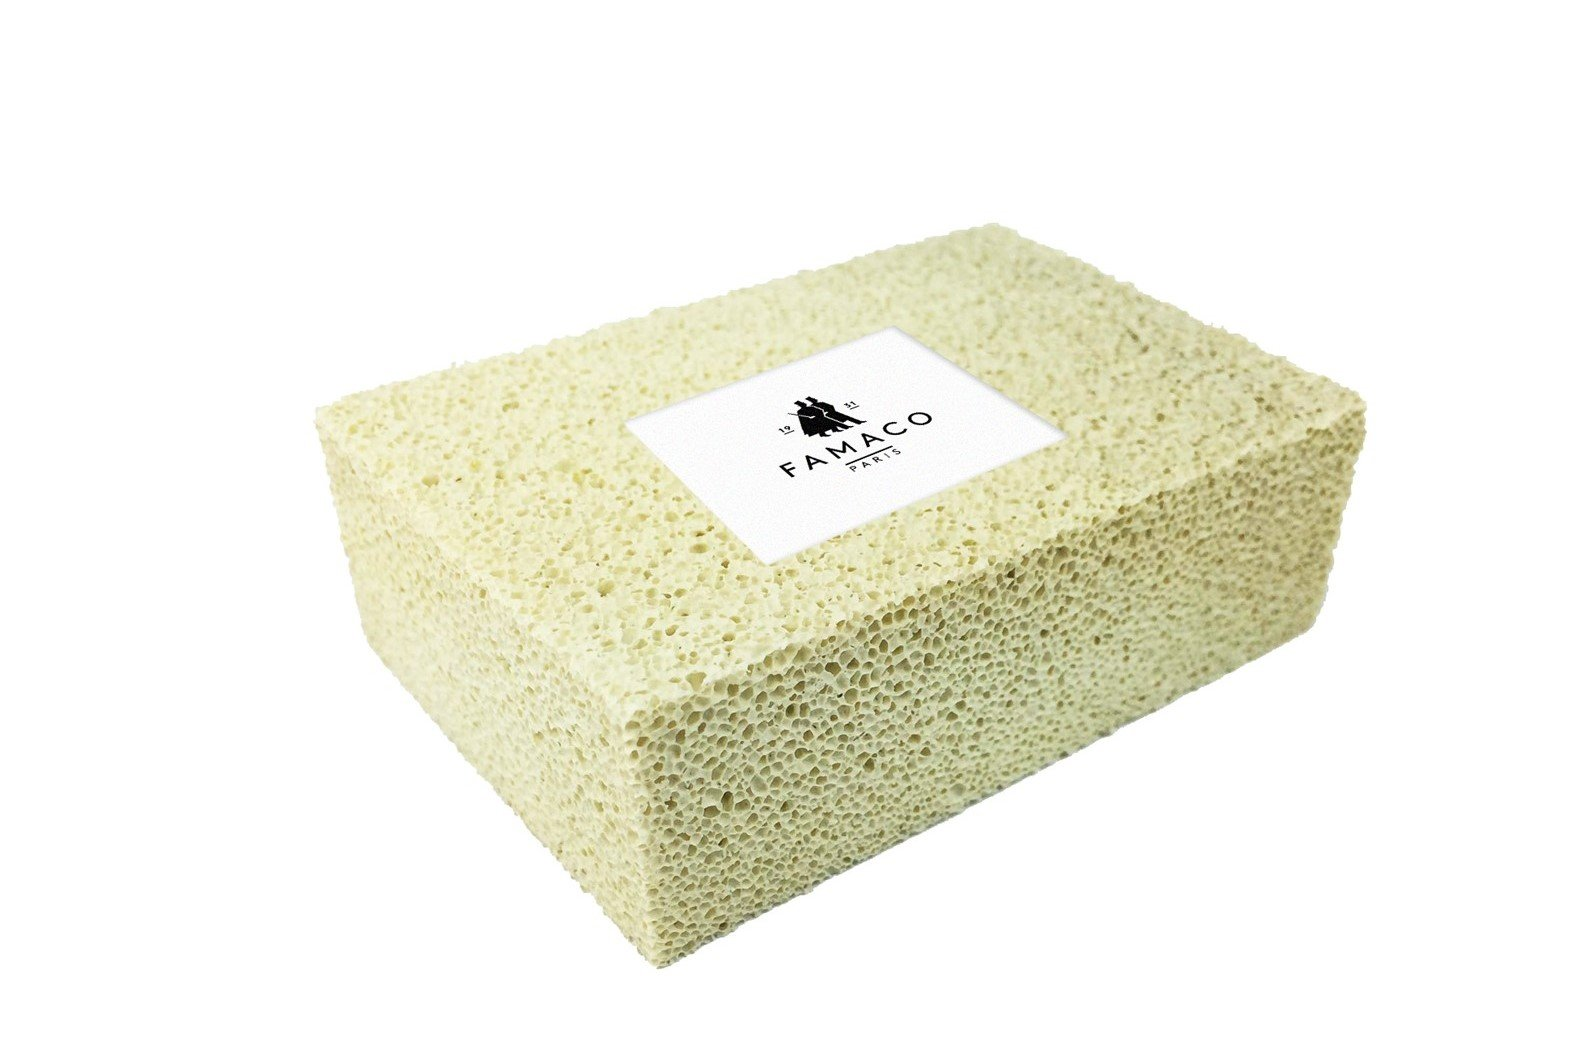 Revive Dust Clean Magnetic Sponge Famaco / Schwam Luxe Velvet Protect Care Waterproof Your Velvet and Wool Range - Pebble & Leaf Home